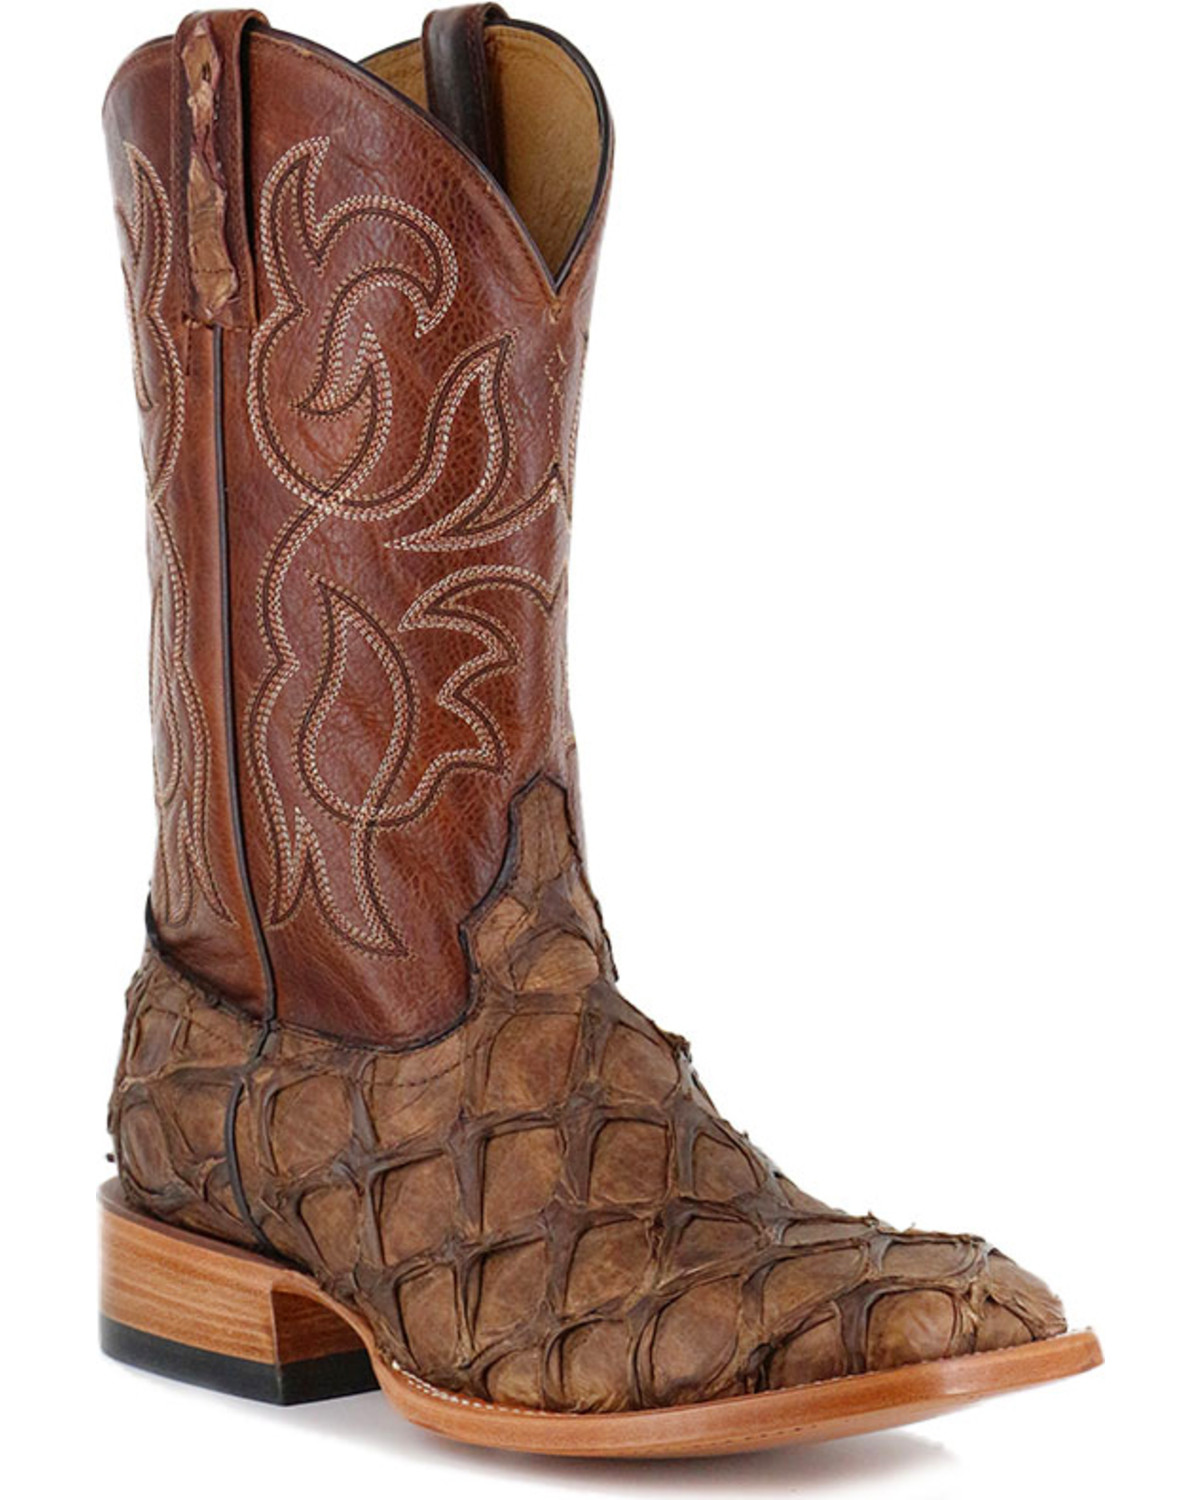 Cody James 174 Men S Pirarucu Exotic Boots Boot Barn